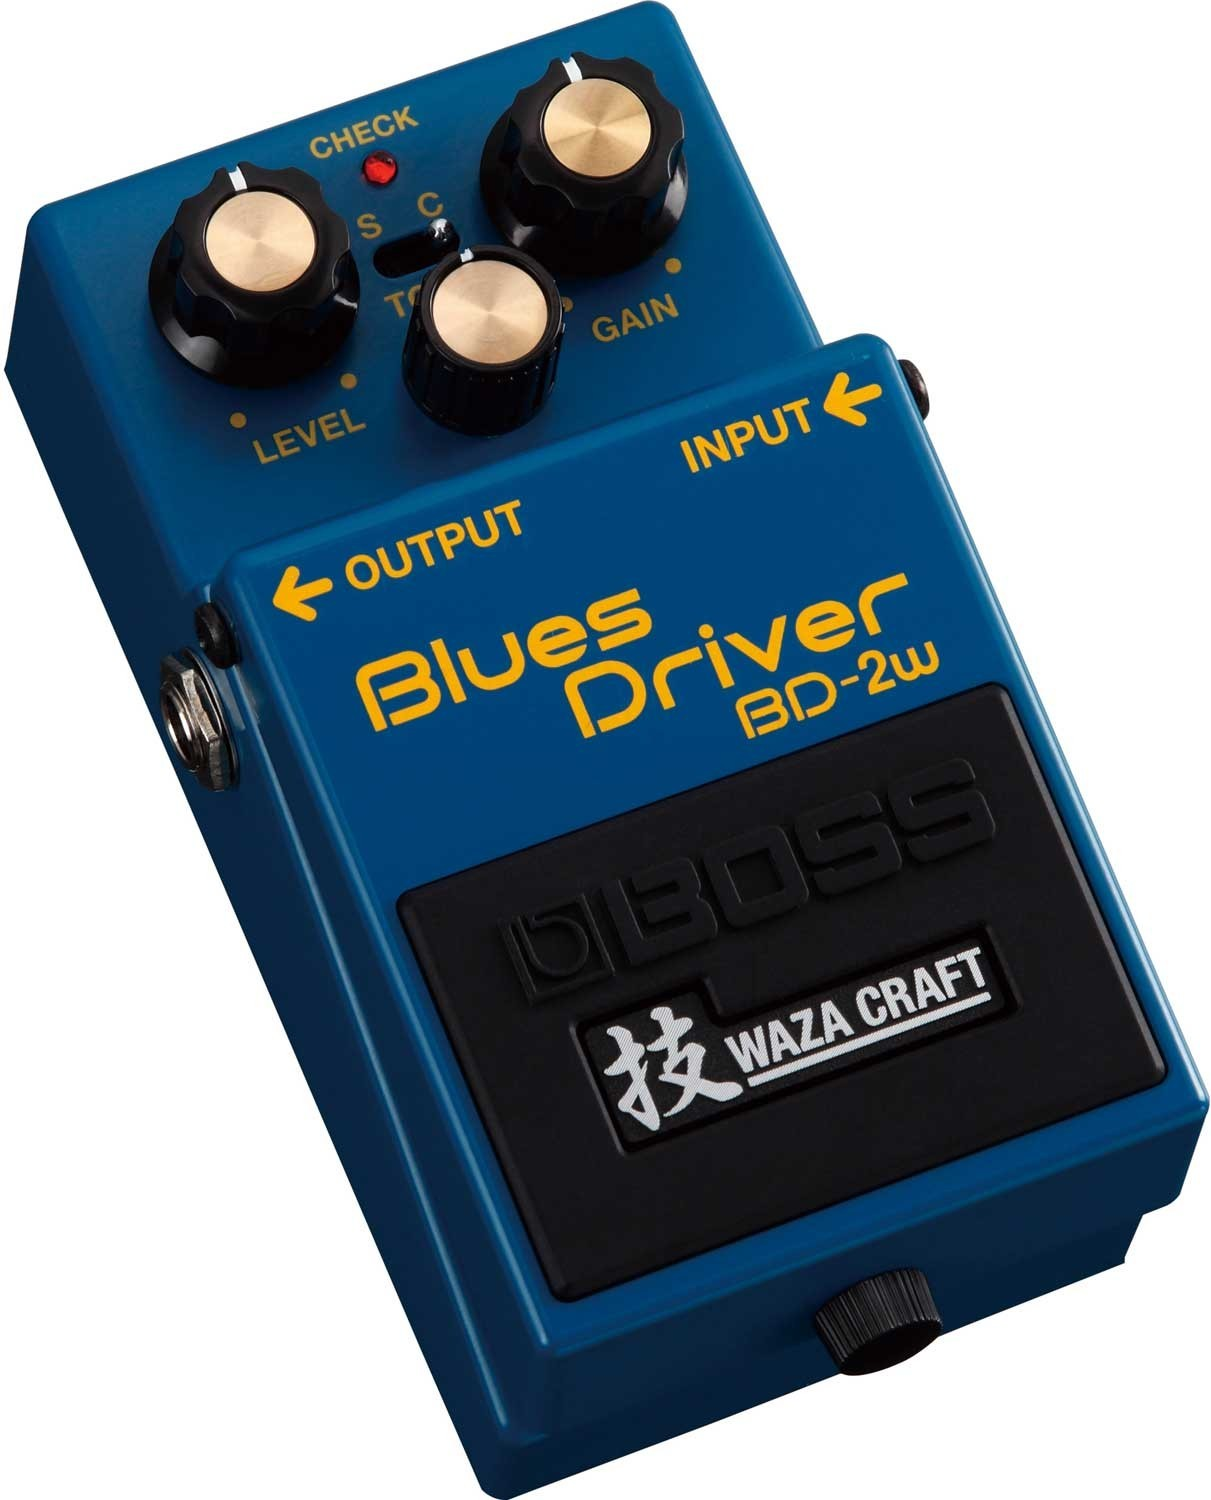 Boss Waza Craft Bd 2w Blues Driver Tone Report Guitar Pedal Wiring Diagrams This Edition Of The Driverthe 2wincludes Originals Controls For Volume And Drive As With Other Pedals